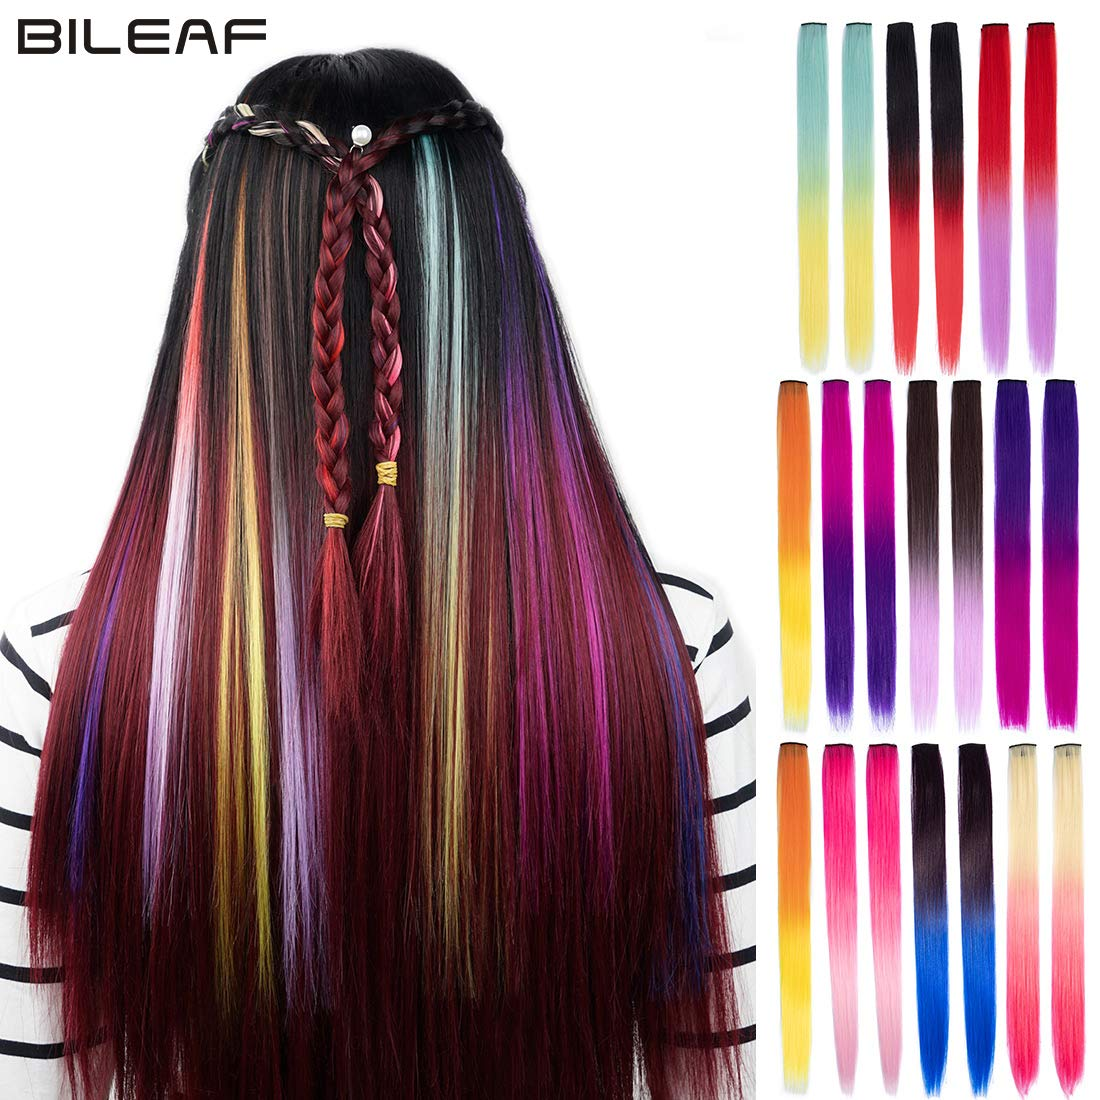 20pcs Colored Party Clip in Hair Extensions for Kids 18'' Ombre Synthetic Colorful Straight Clip on Hair Pieces(Mixed Colors) by Bileaf